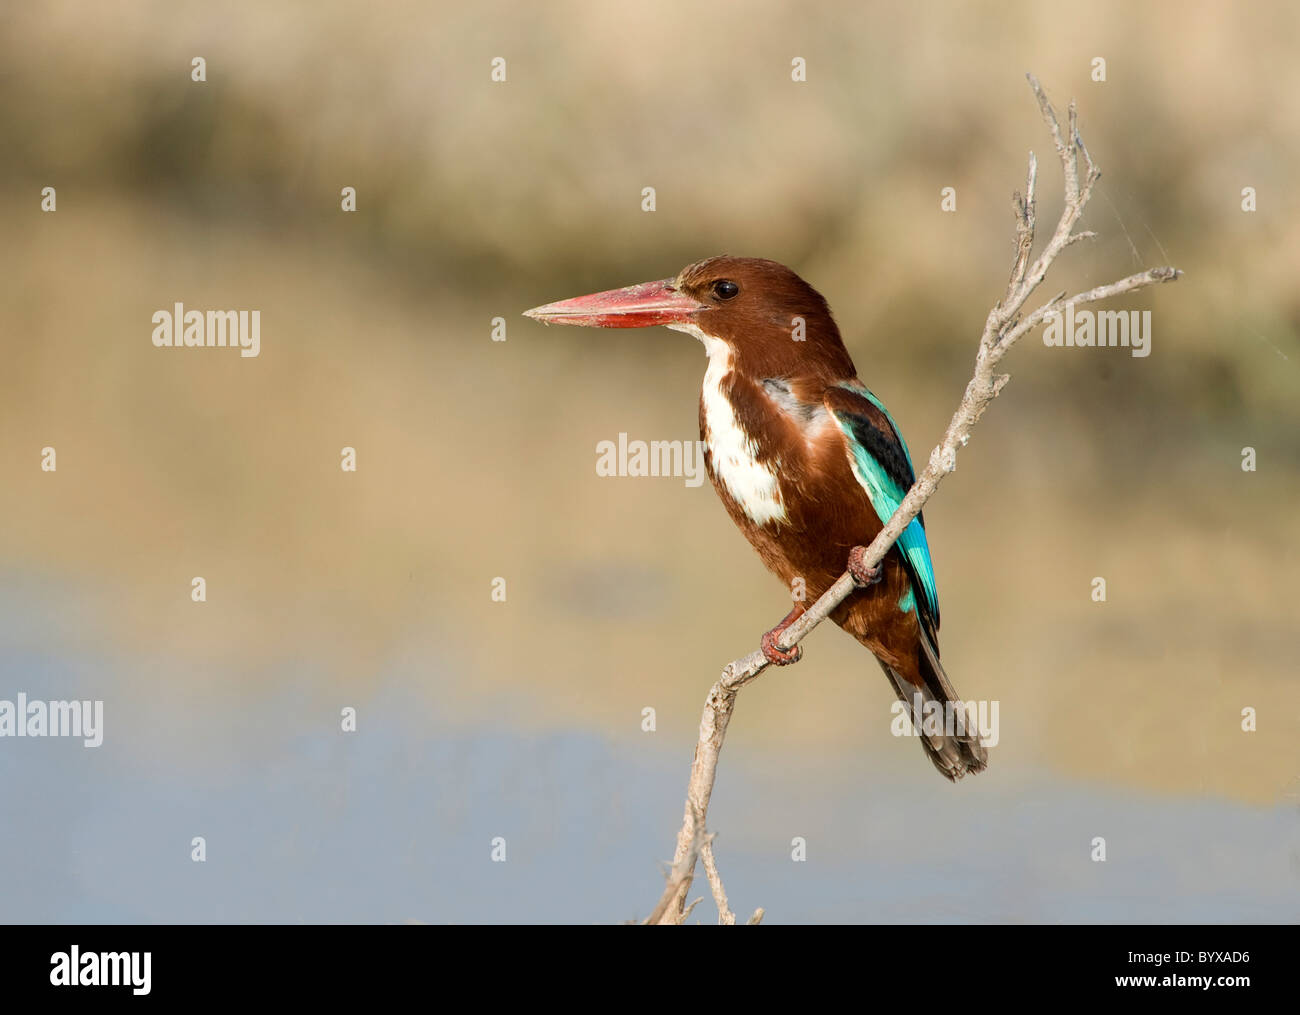 White Throated Kingfisher Halcyon smyrnensis India - Stock Image